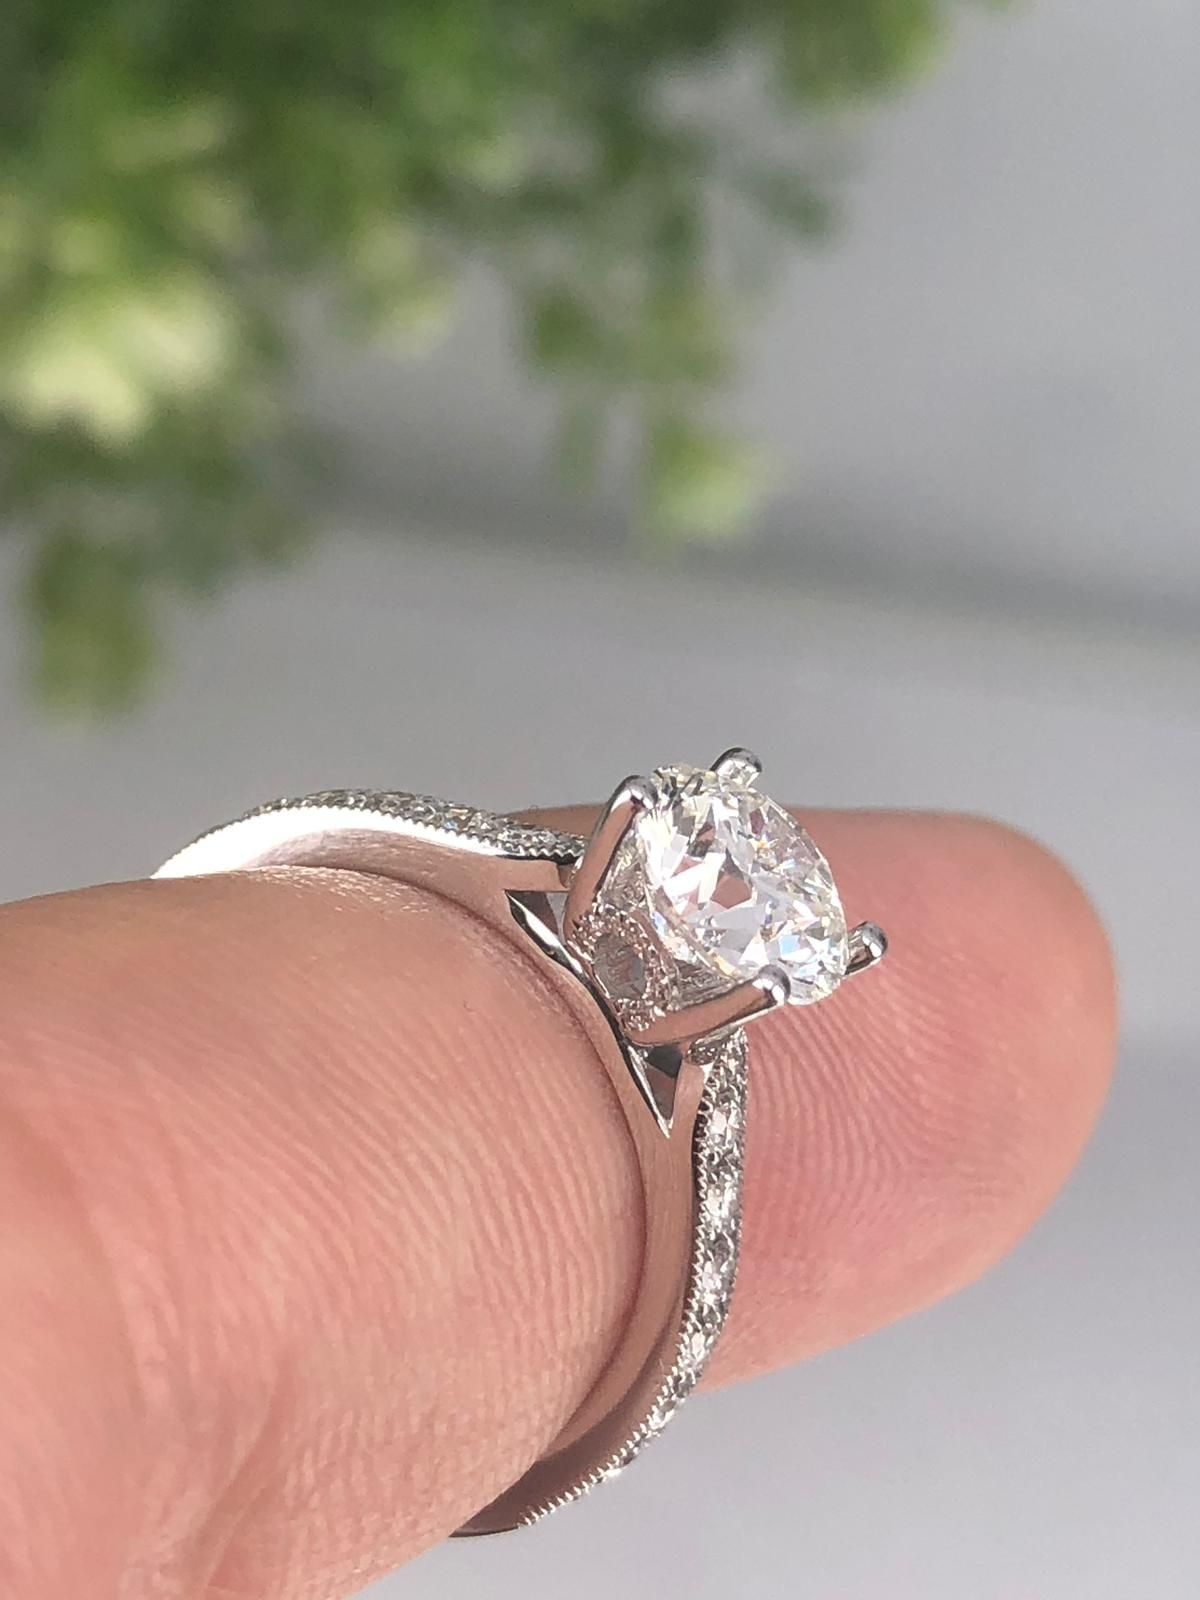 Pin On Custom Diamond Jewelry With Regard To Current Composite Diamond Five Stone Anniversary Bands In White Gold (View 17 of 25)